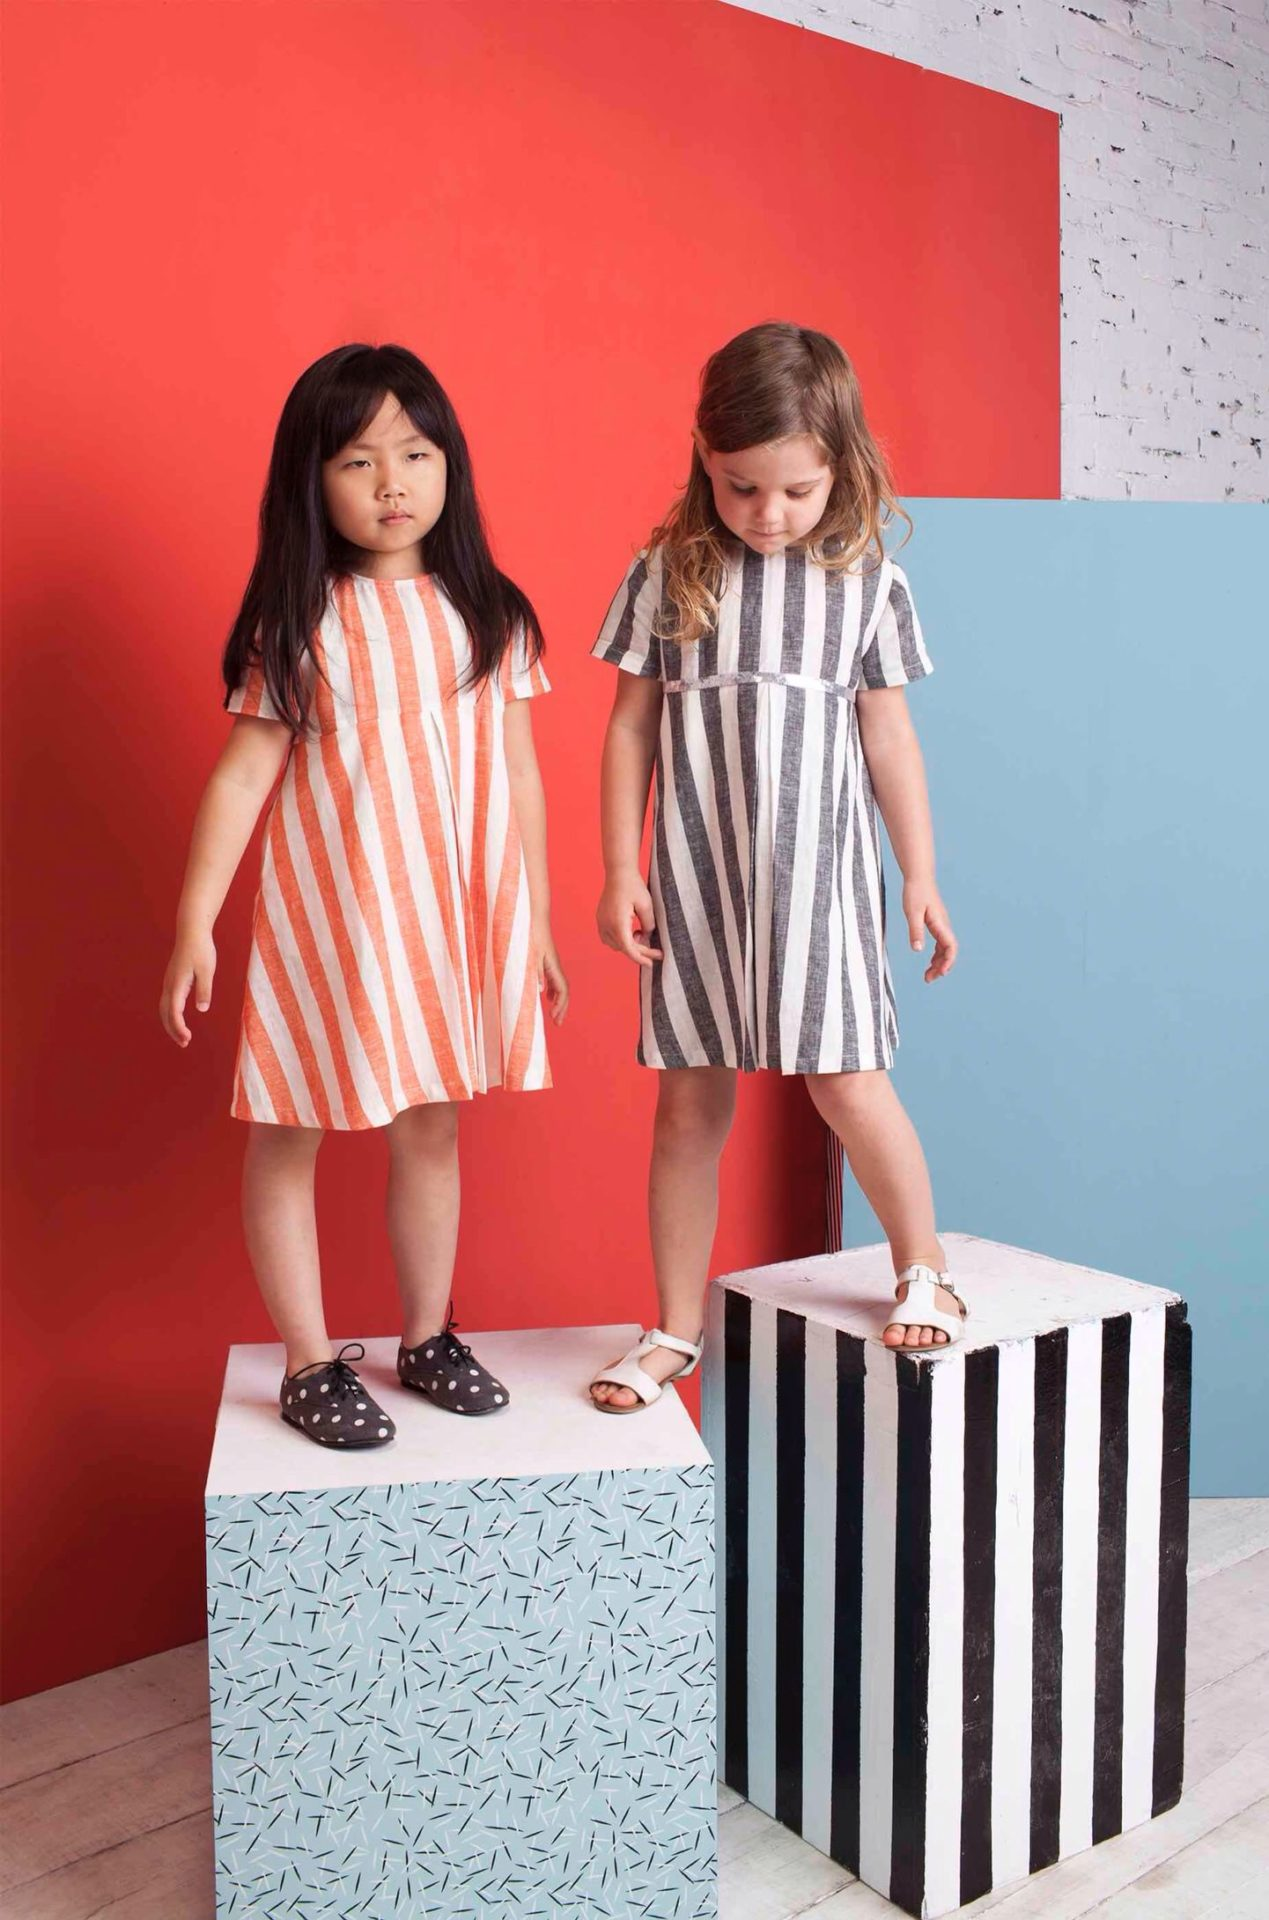 Bold stripes for girlswear at Milk & Biscuits summer dresses